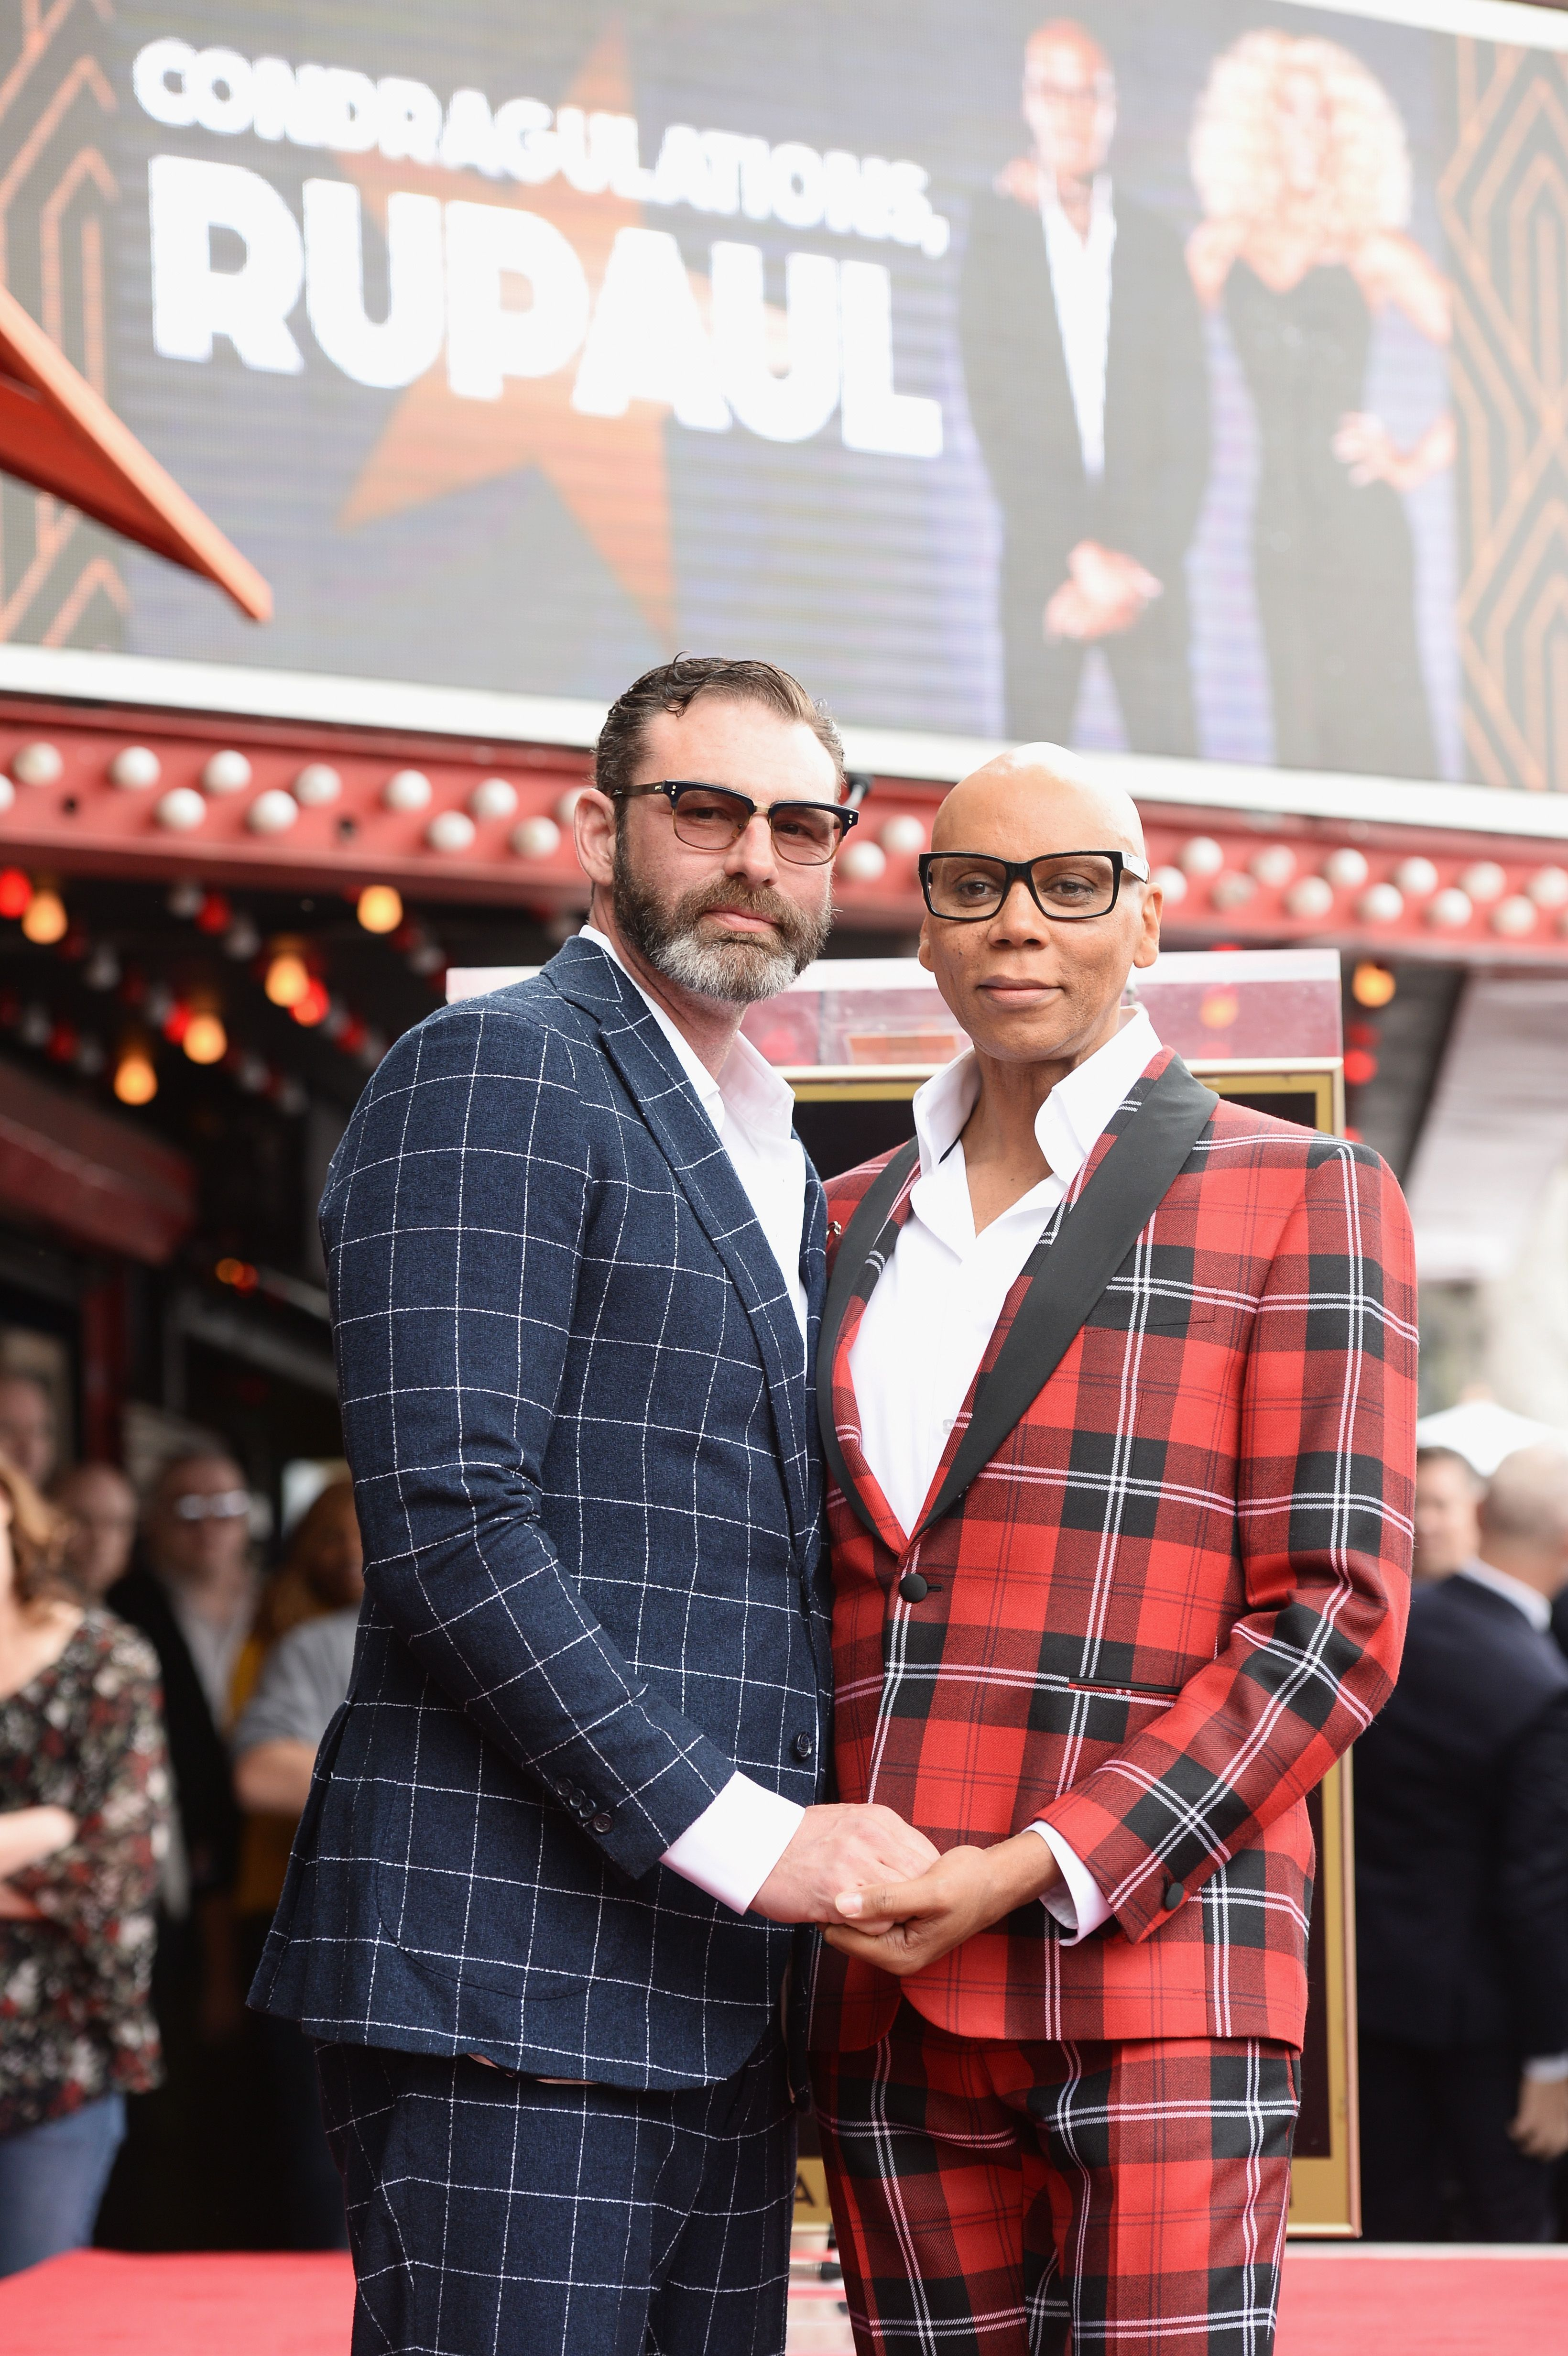 RuPaul (R) and his husband Georges LeBar attend RuPaul's star ceremony on The Hollywood Walk of Fame on March 16, 2018 in Hollywood, California. | Source: Getty Images